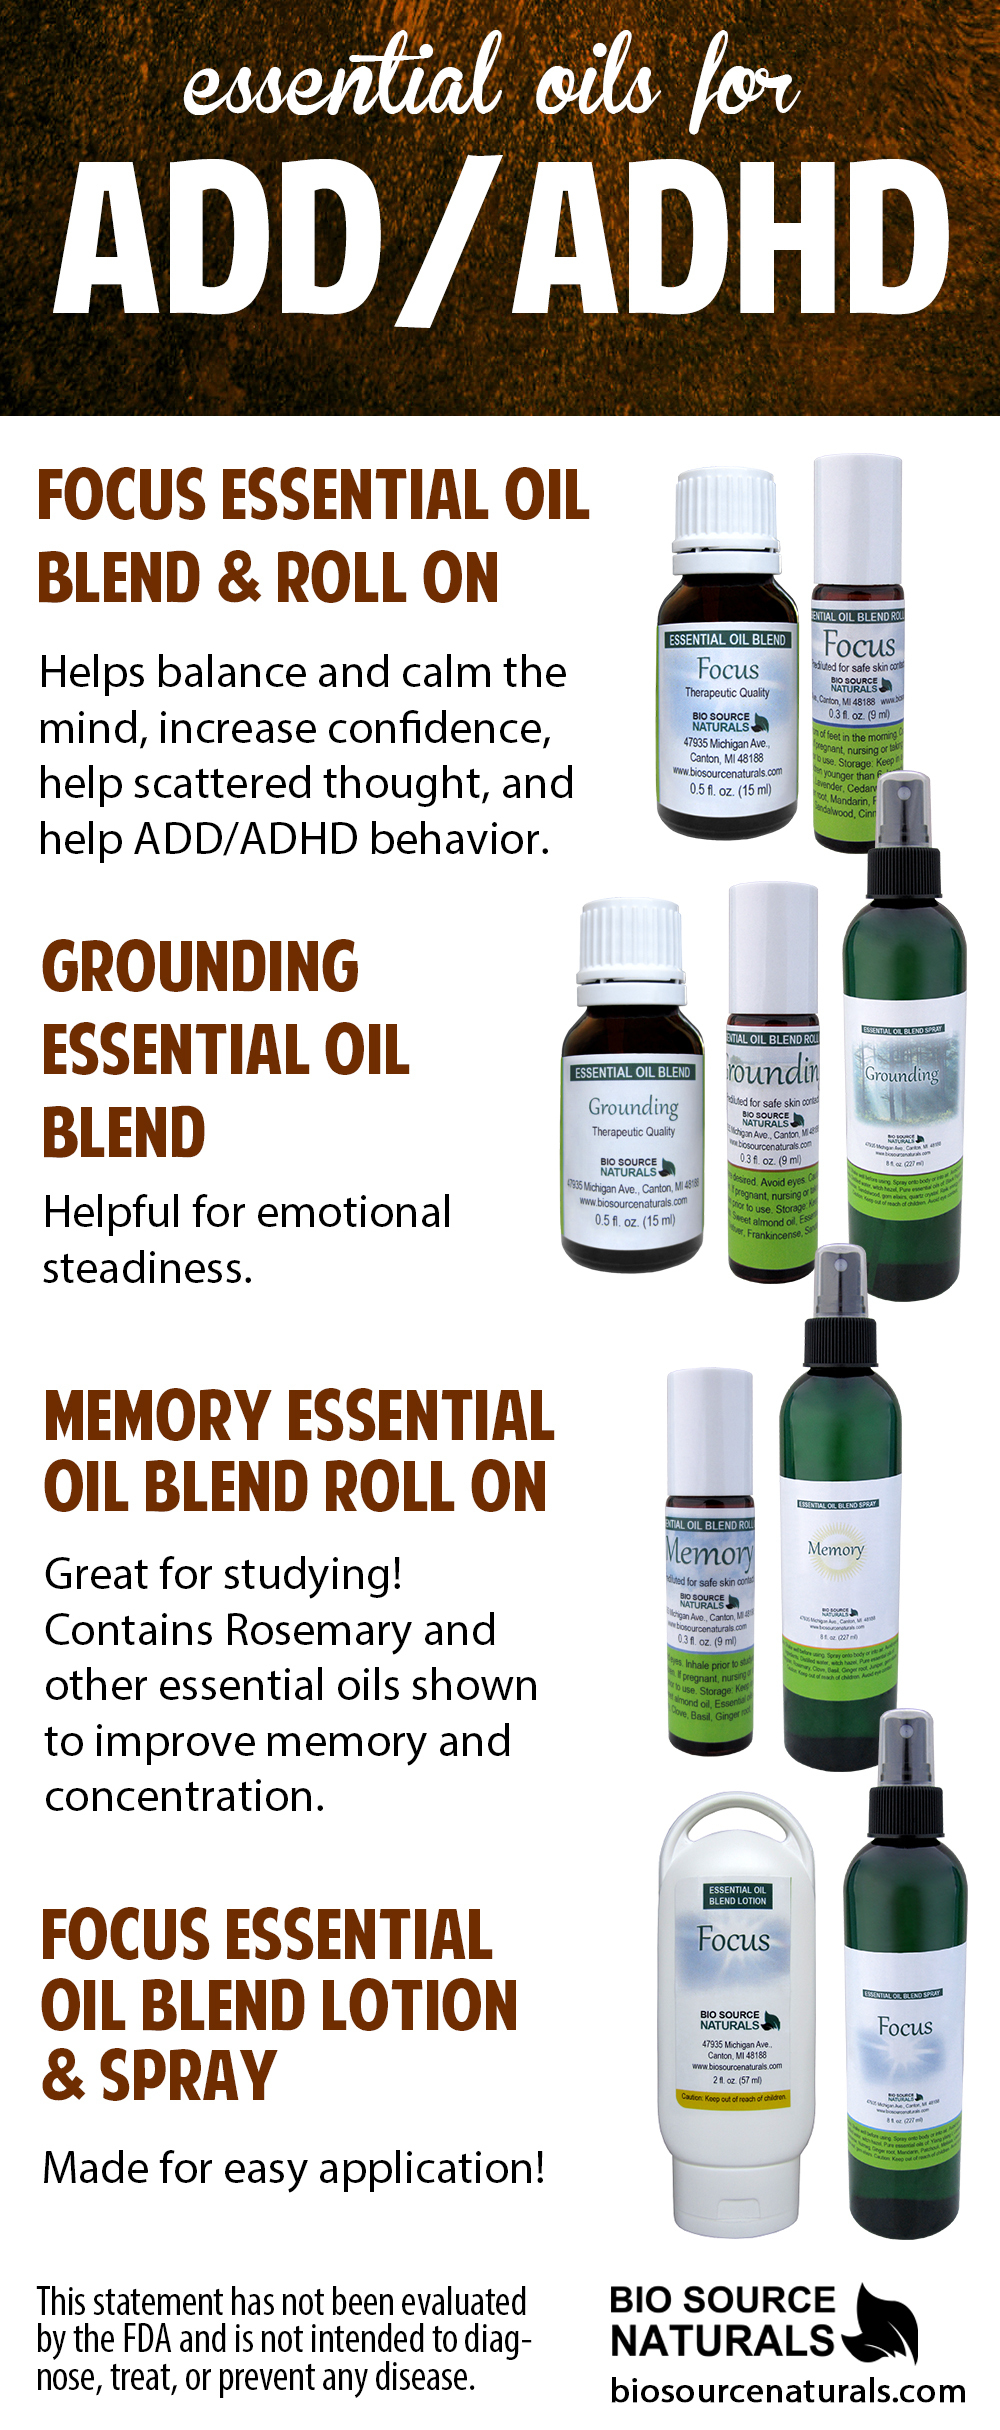 Grounding Essential Oil Blend - 2.0 fl oz (60 ml)